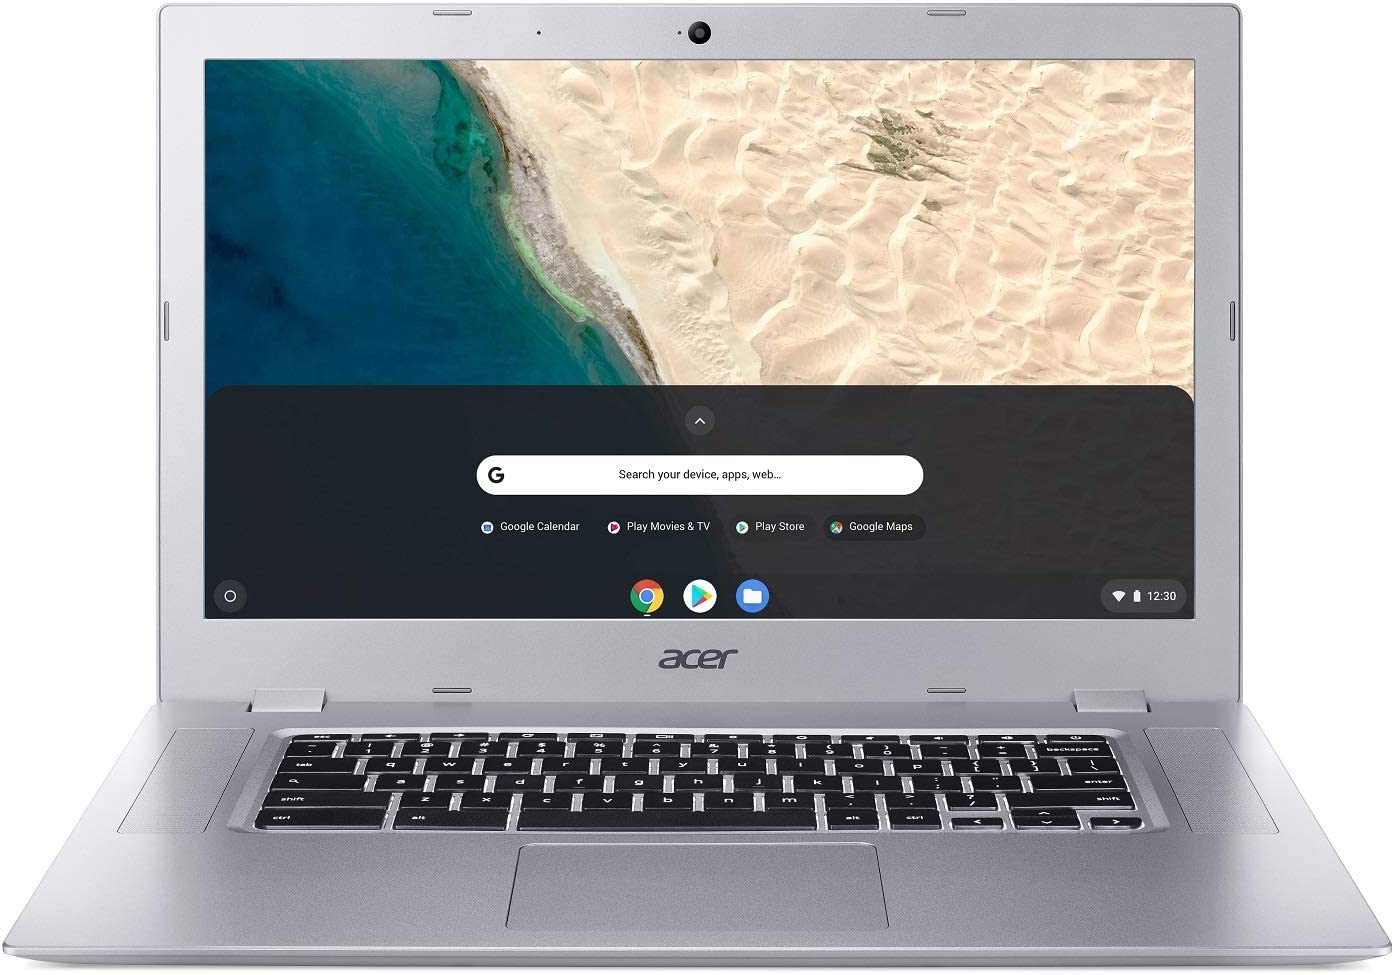 "Acer Chromebook 315, AMD Dual-Core A4-9120C Processor, 15.6"" HD, AMD Radeon R4 Graphics, 4GB DDR4, 32GB eMMC, Google Chrome, CB315-2H-25TX (Renewed)"